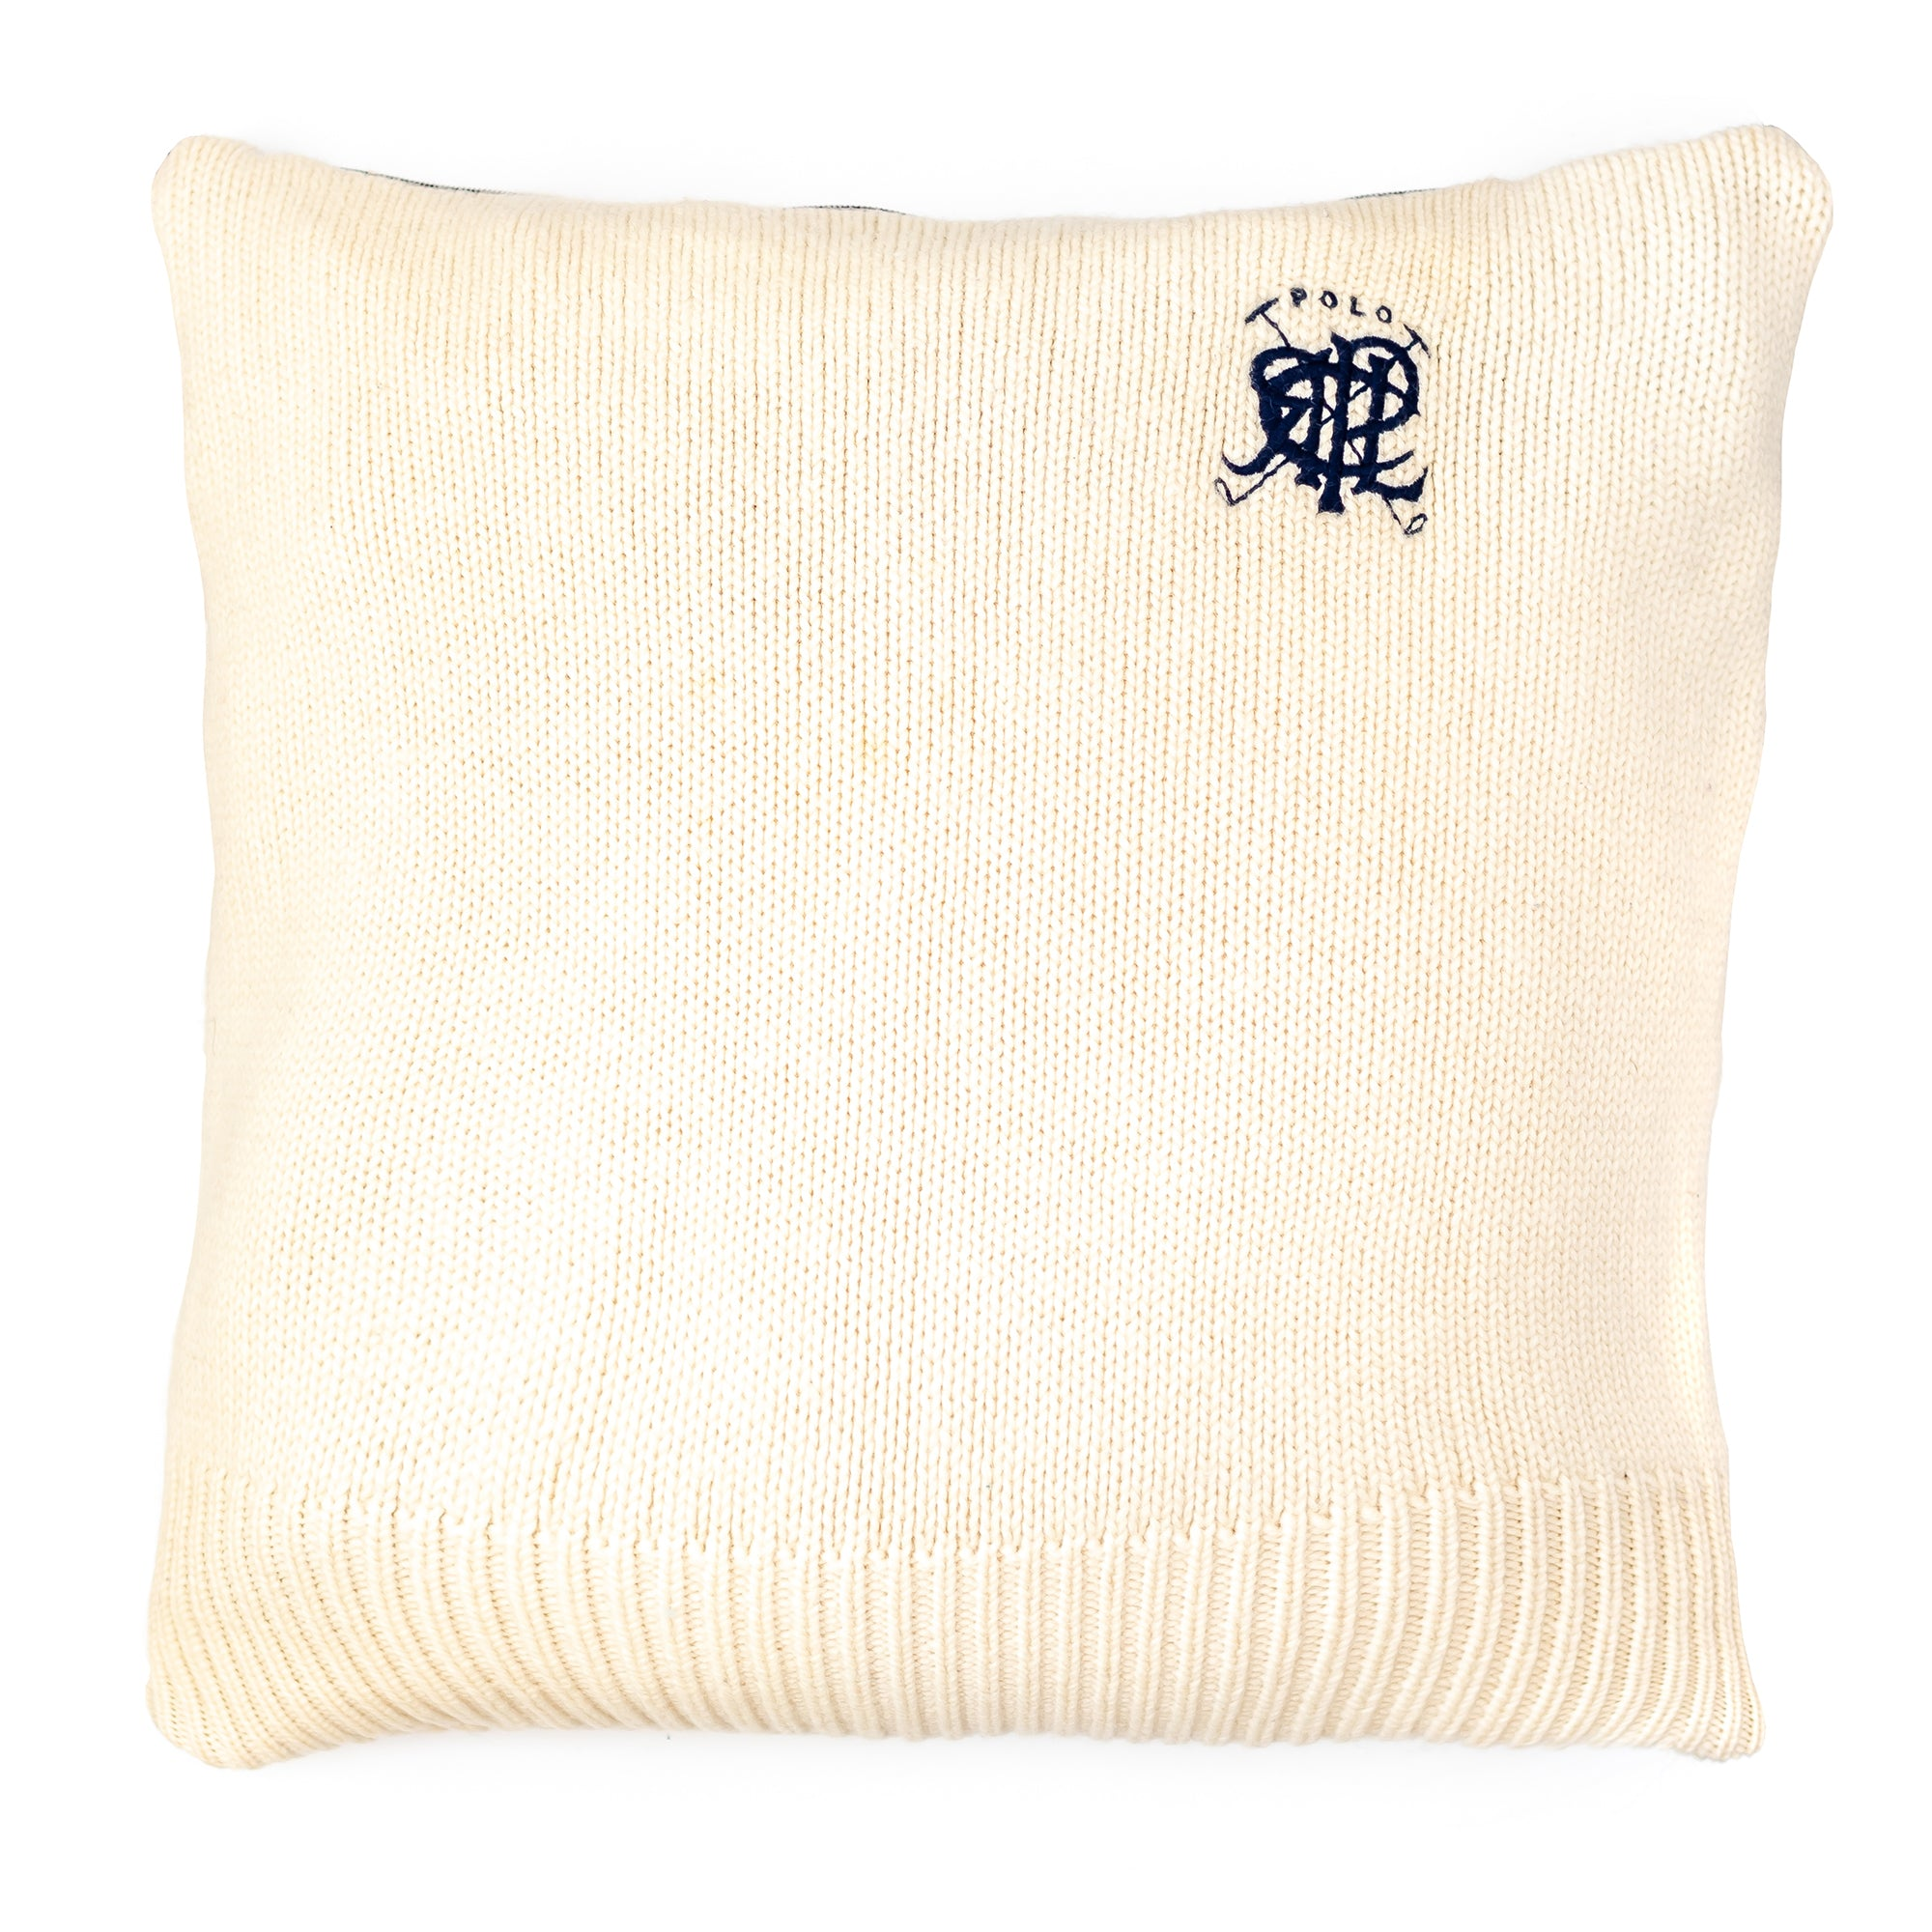 24x24 RL Polo Pillow Cover